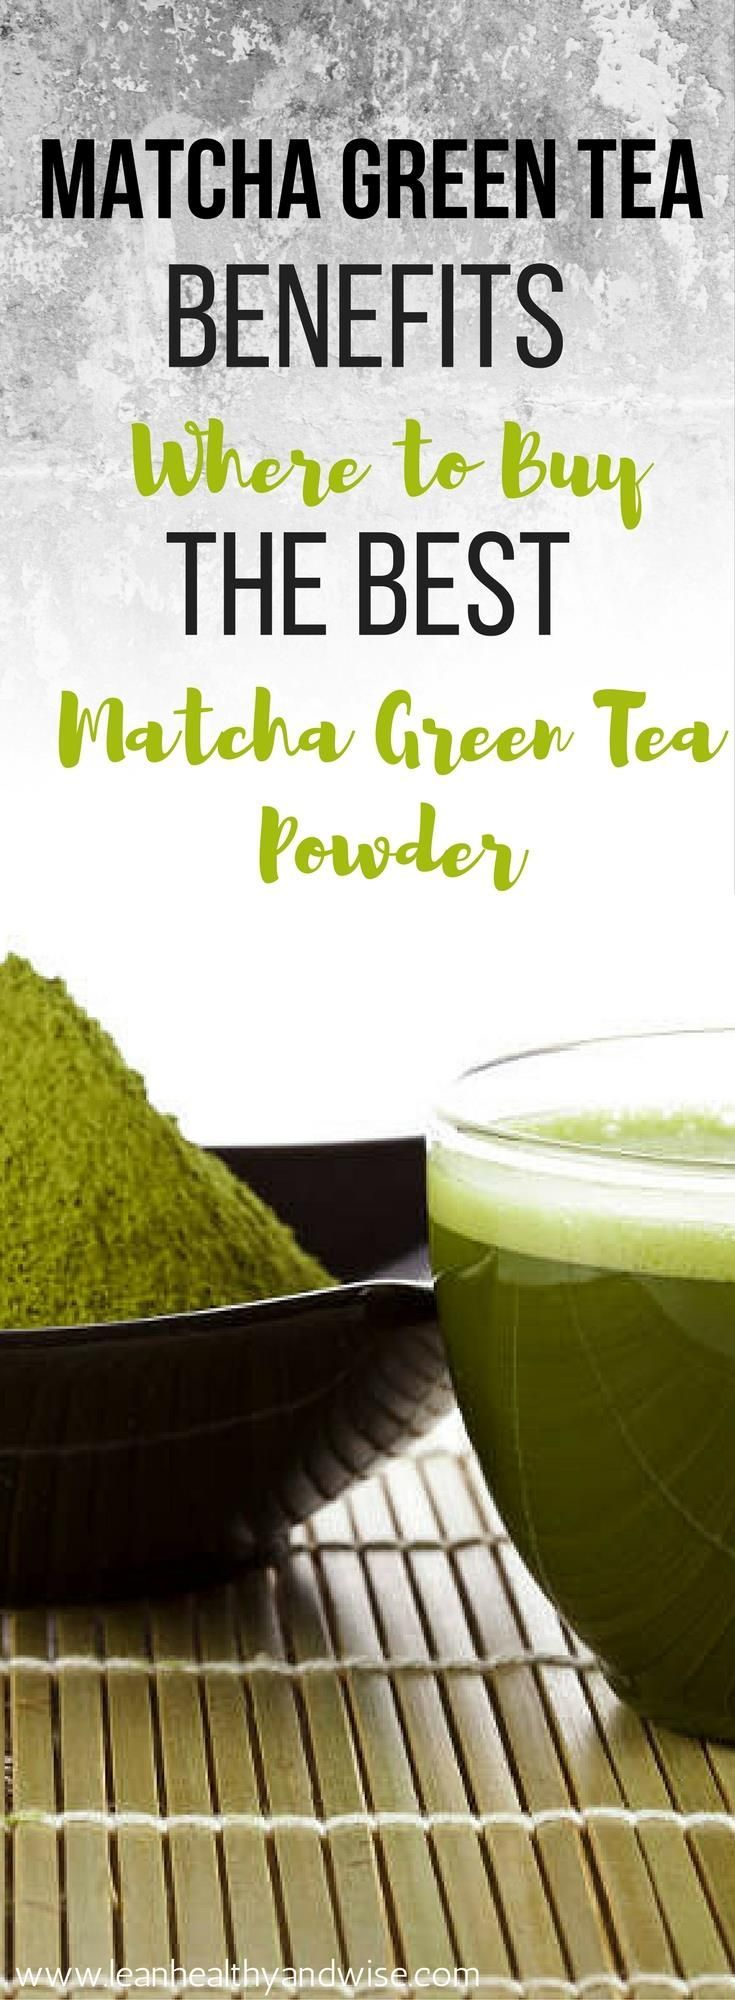 Discover the incredible health benefits of matcha green tea you didn't know about and find out where to buy the best matcha green tea powder. via /leanhealthywise/